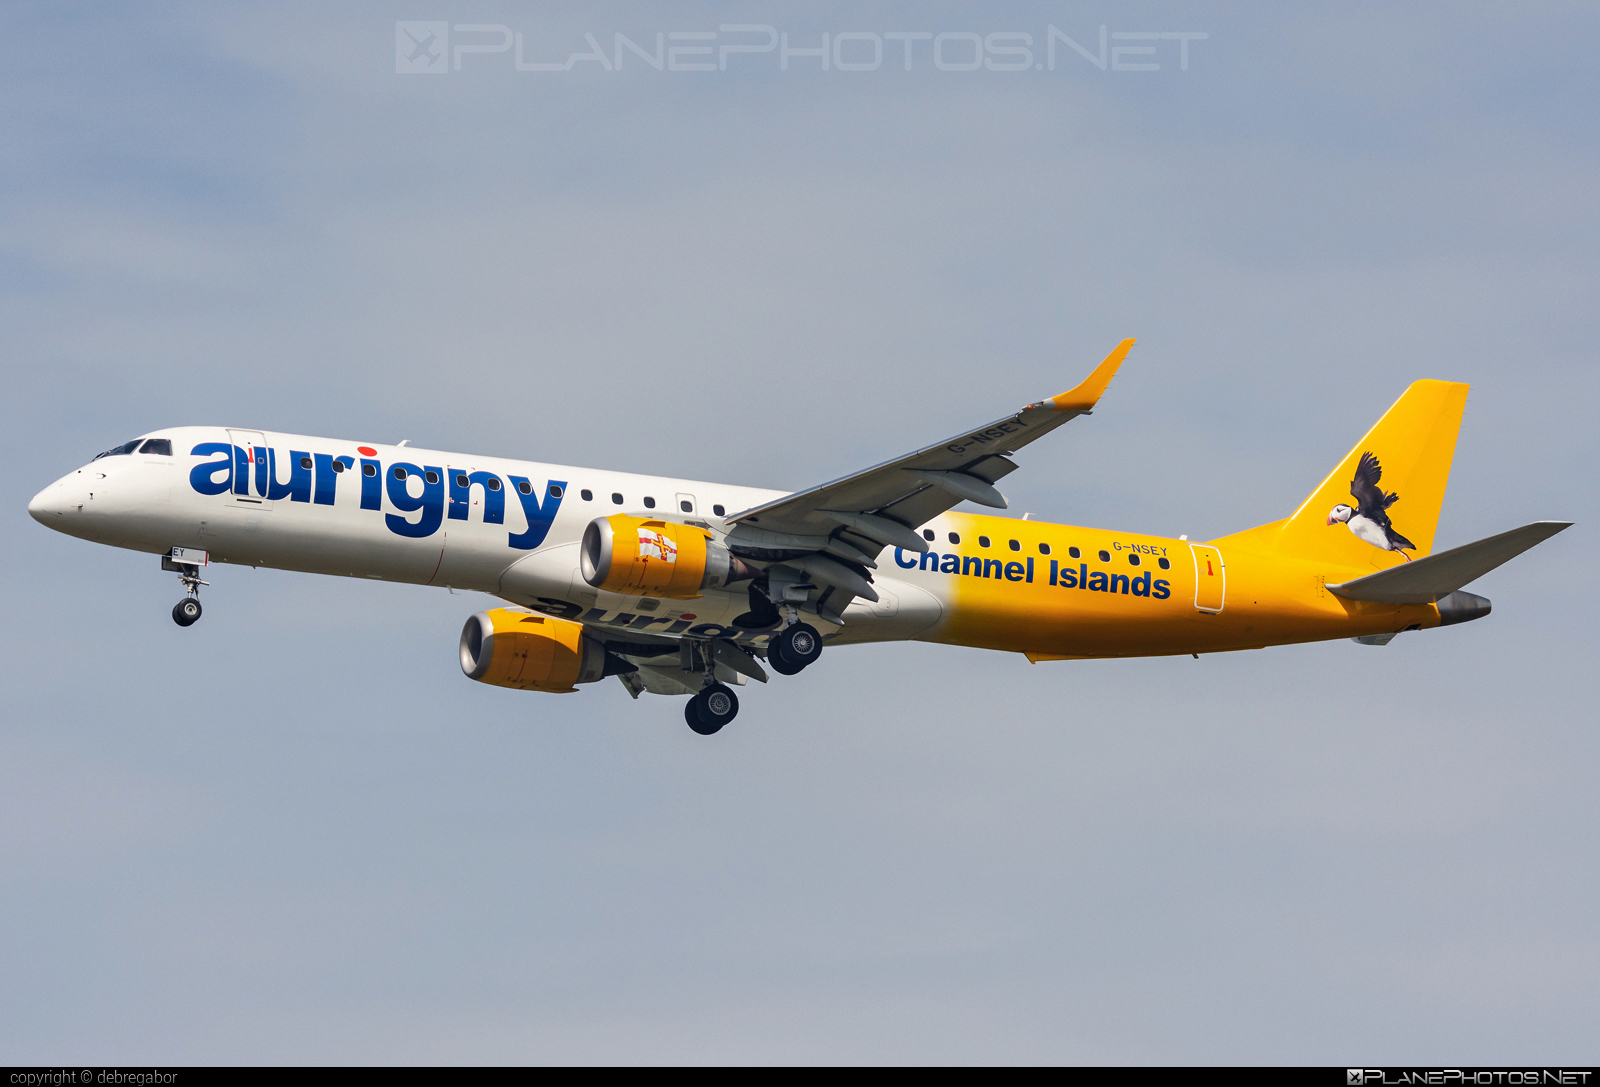 Embraer E195STD (ERJ-190-200STD) - G-NSEY operated by Aurigny Air Services #e190 #e190200 #e190200std #e195std #embraer #embraer190200std #embraer195 #embraer195std